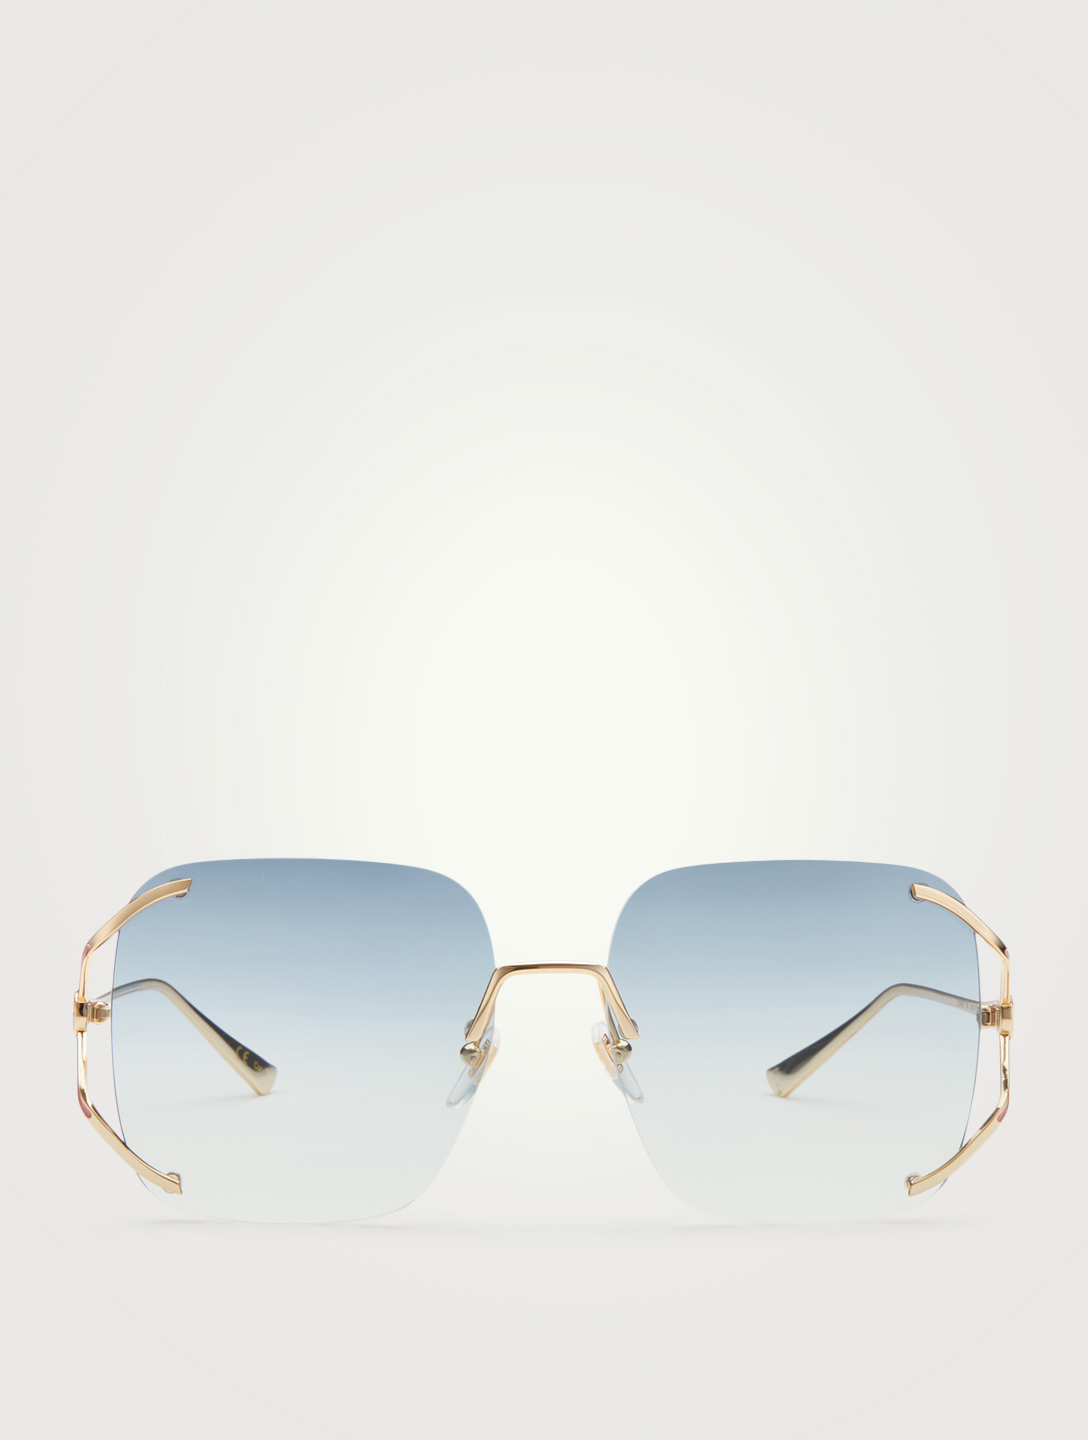 GUCCI Square Sunglasses Women's Metallic